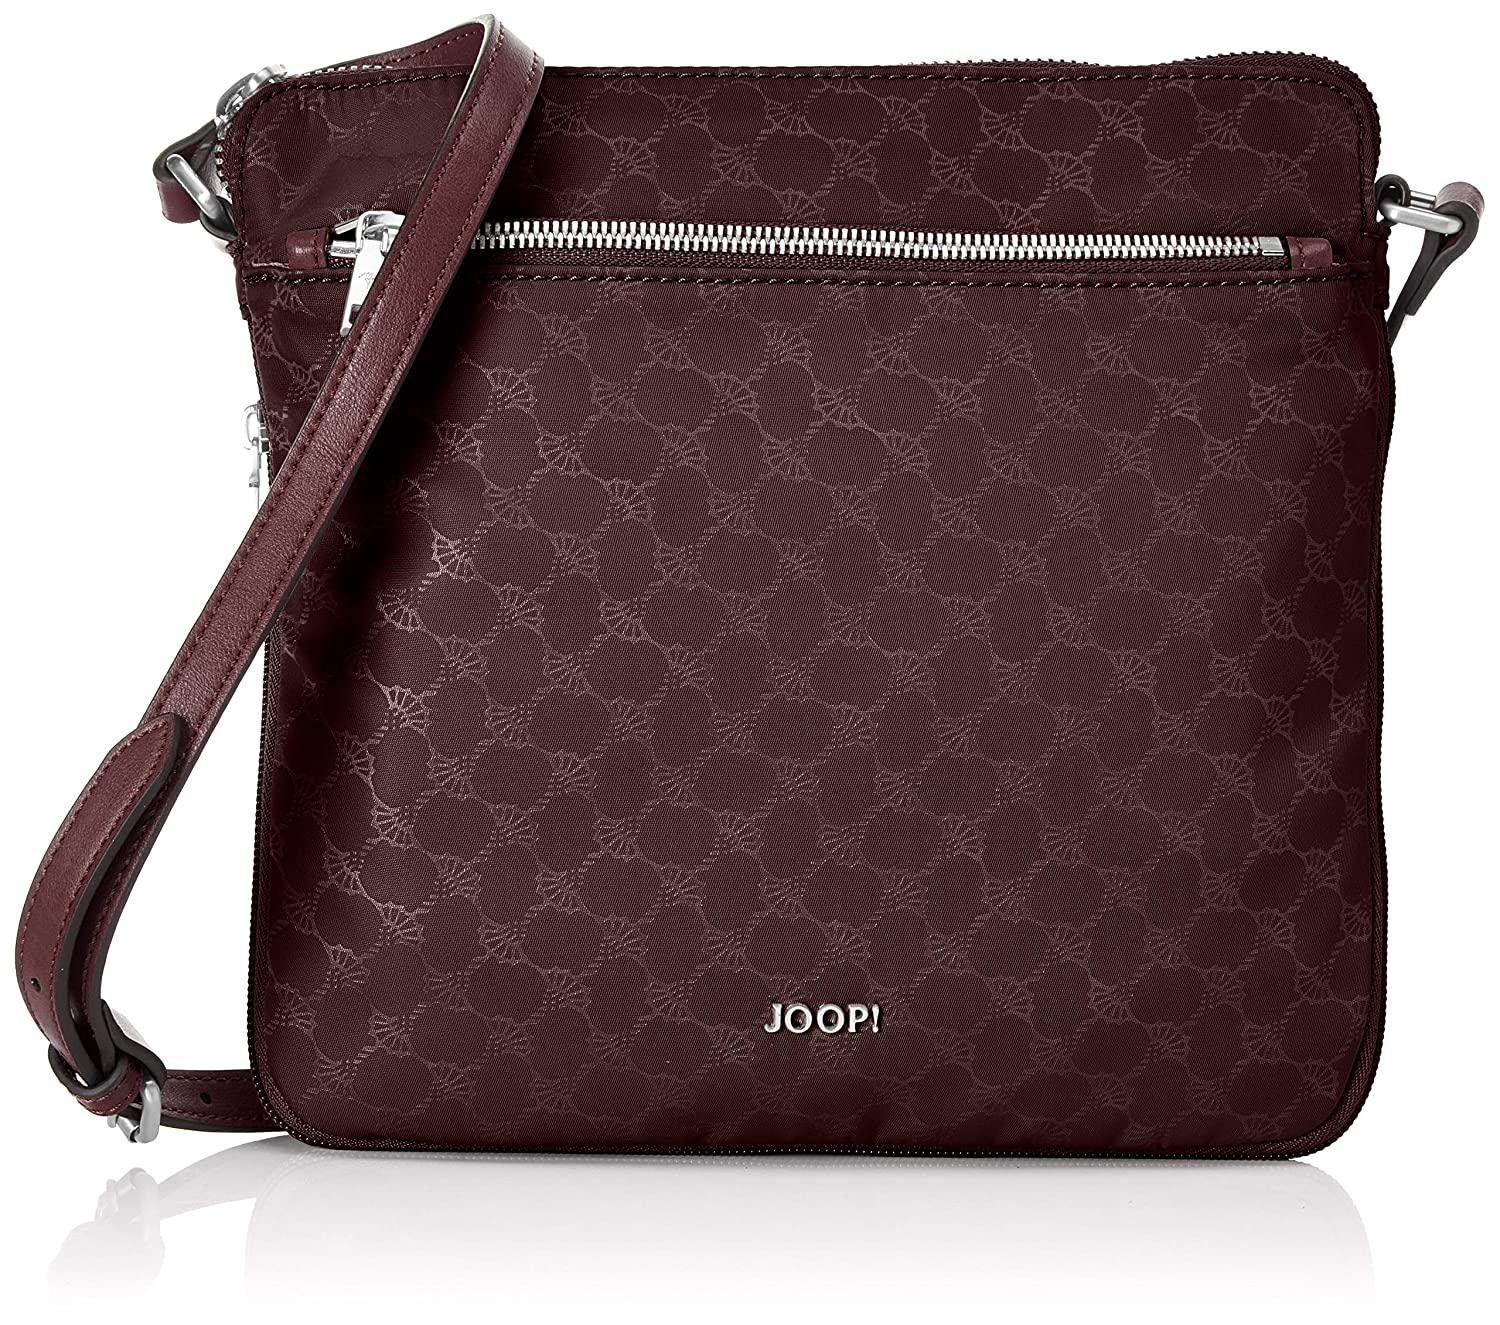 offer discounts on feet at good quality Joop Damen Nylon Cornflower Lola Shoulderbag Mhz Schultertasche